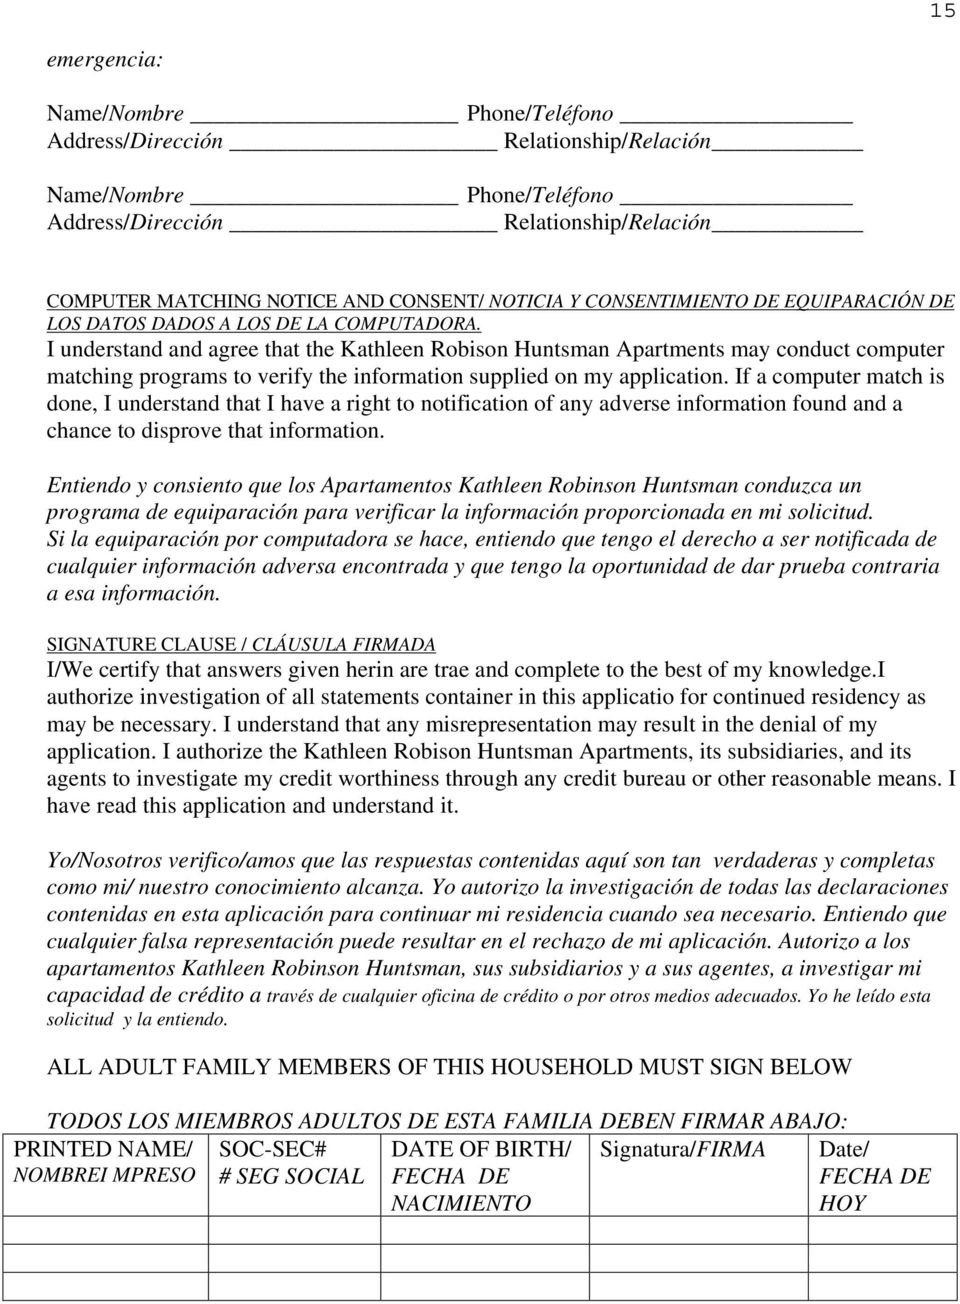 I understand and agree that the Kathleen Robison Huntsman Apartments may conduct computer matching programs to verify the information supplied on my application.